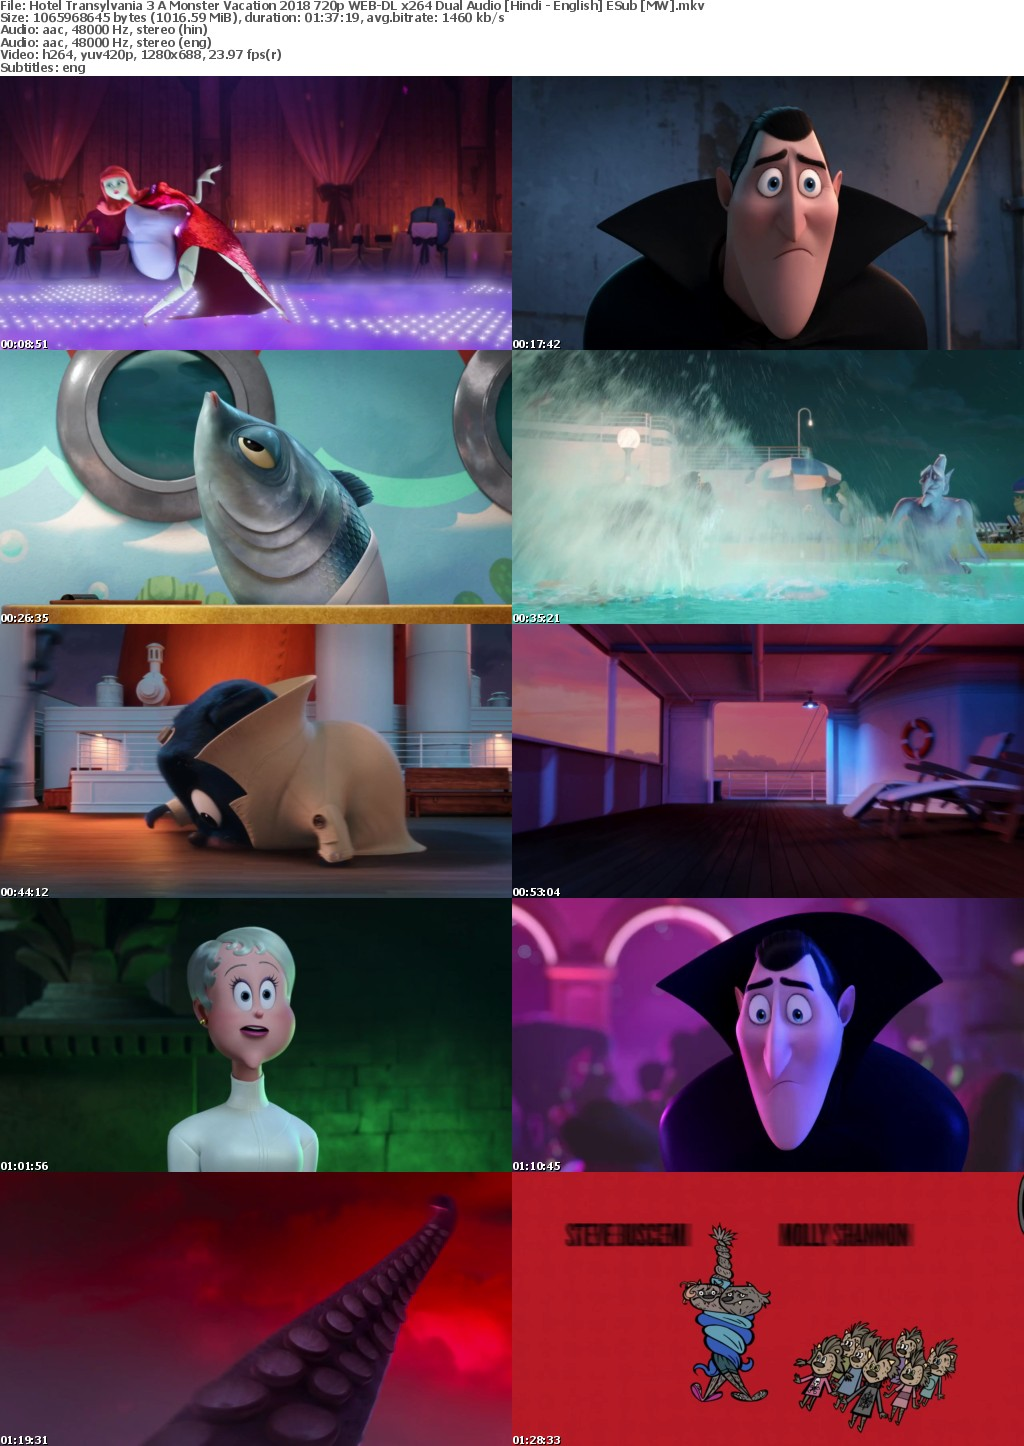 Hotel Transylvania 3 A Monster Vacation (2018) 720p WEB-DL x264 Dual Audio Hindi - English ESub MW